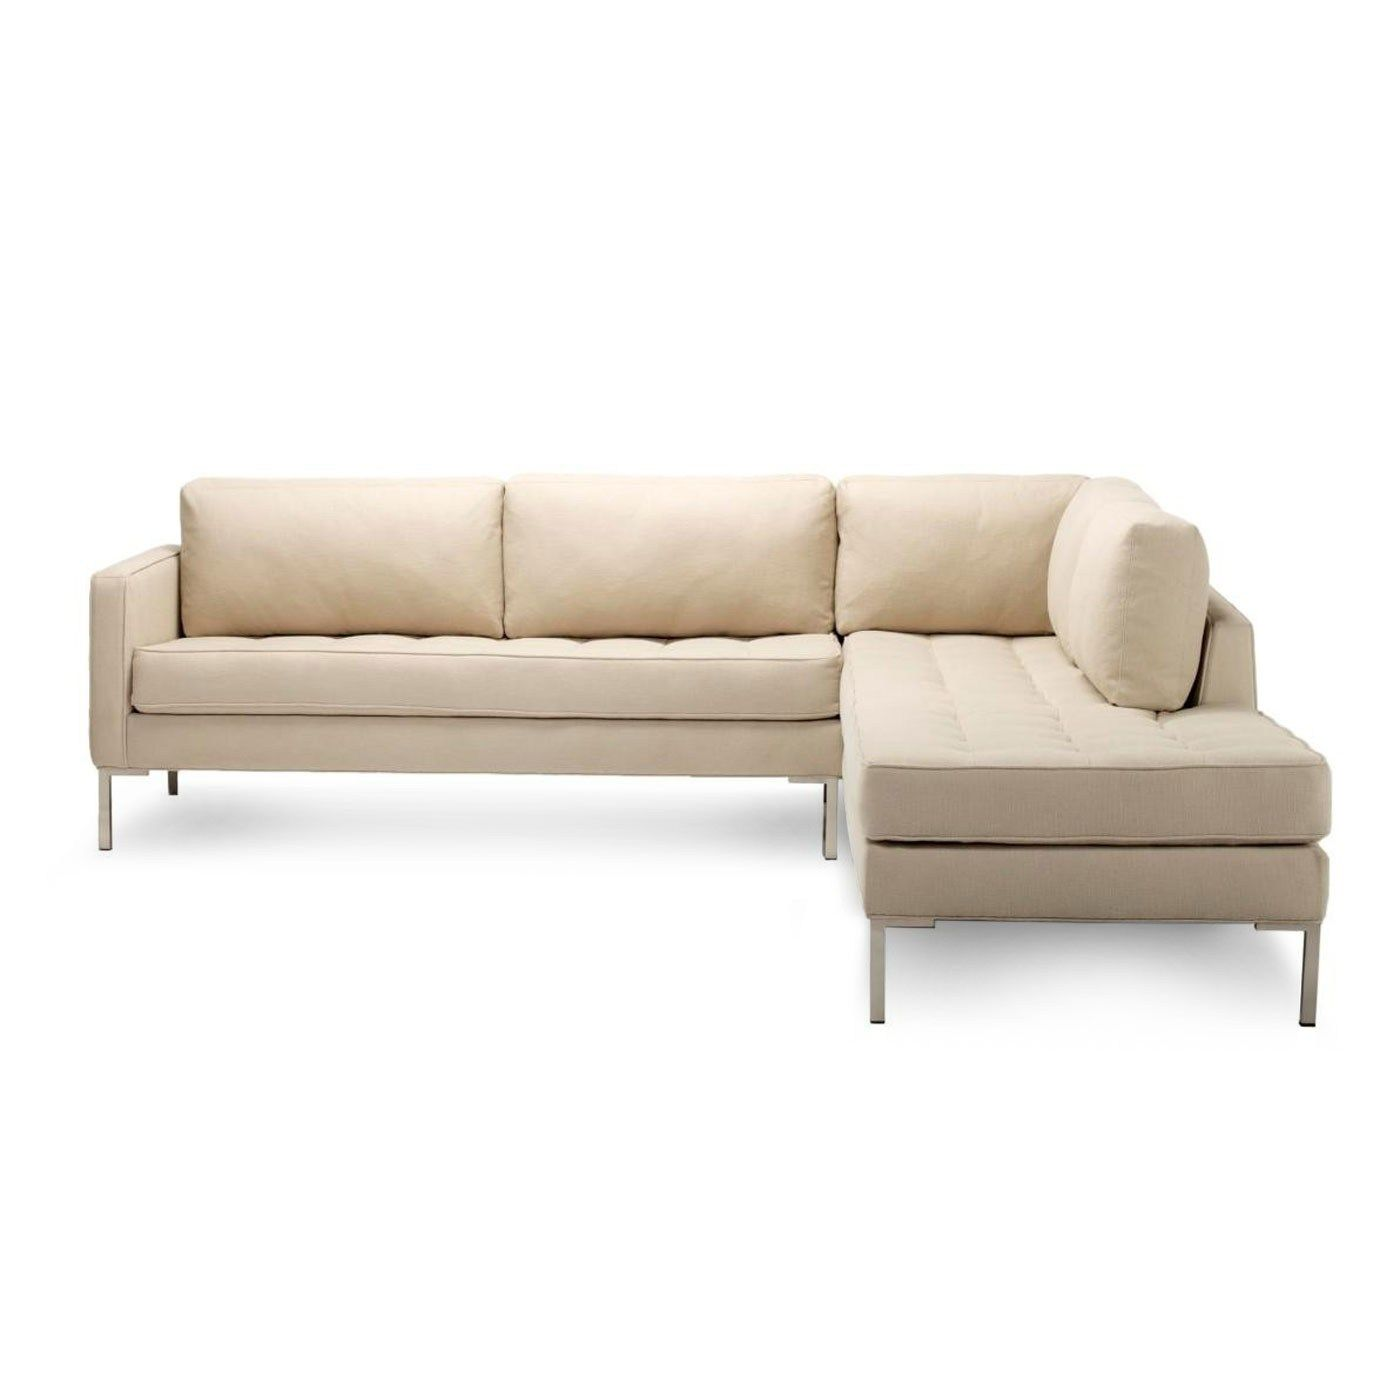 Awesome Perfect Clearance Sectional Sofas 32 For Your Hme Designing  Inspiration With Clearance Sectional Sofas